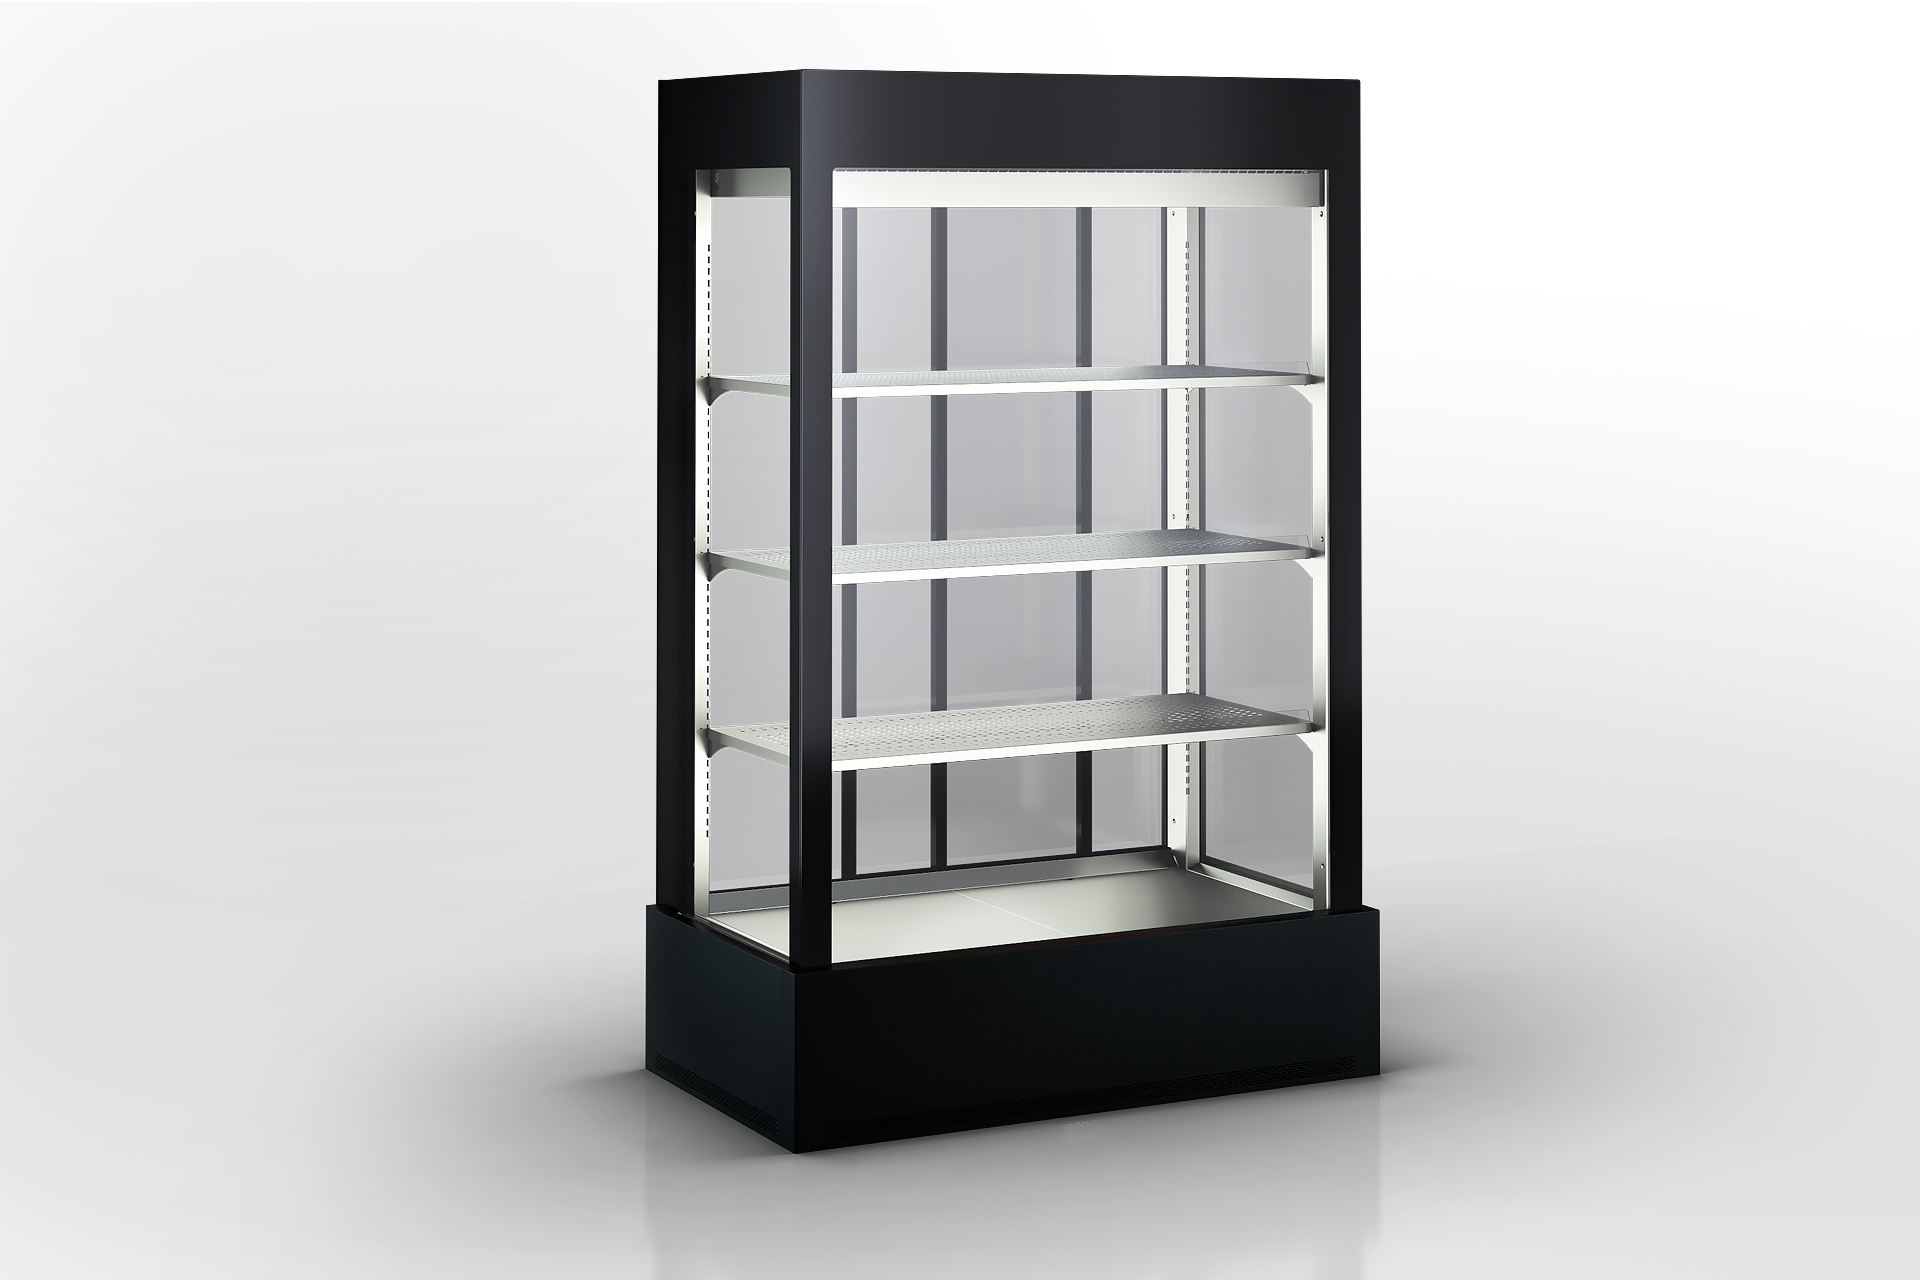 Refrigerated cabinet Kansas А4SG 078 SD 210-S1000A-135